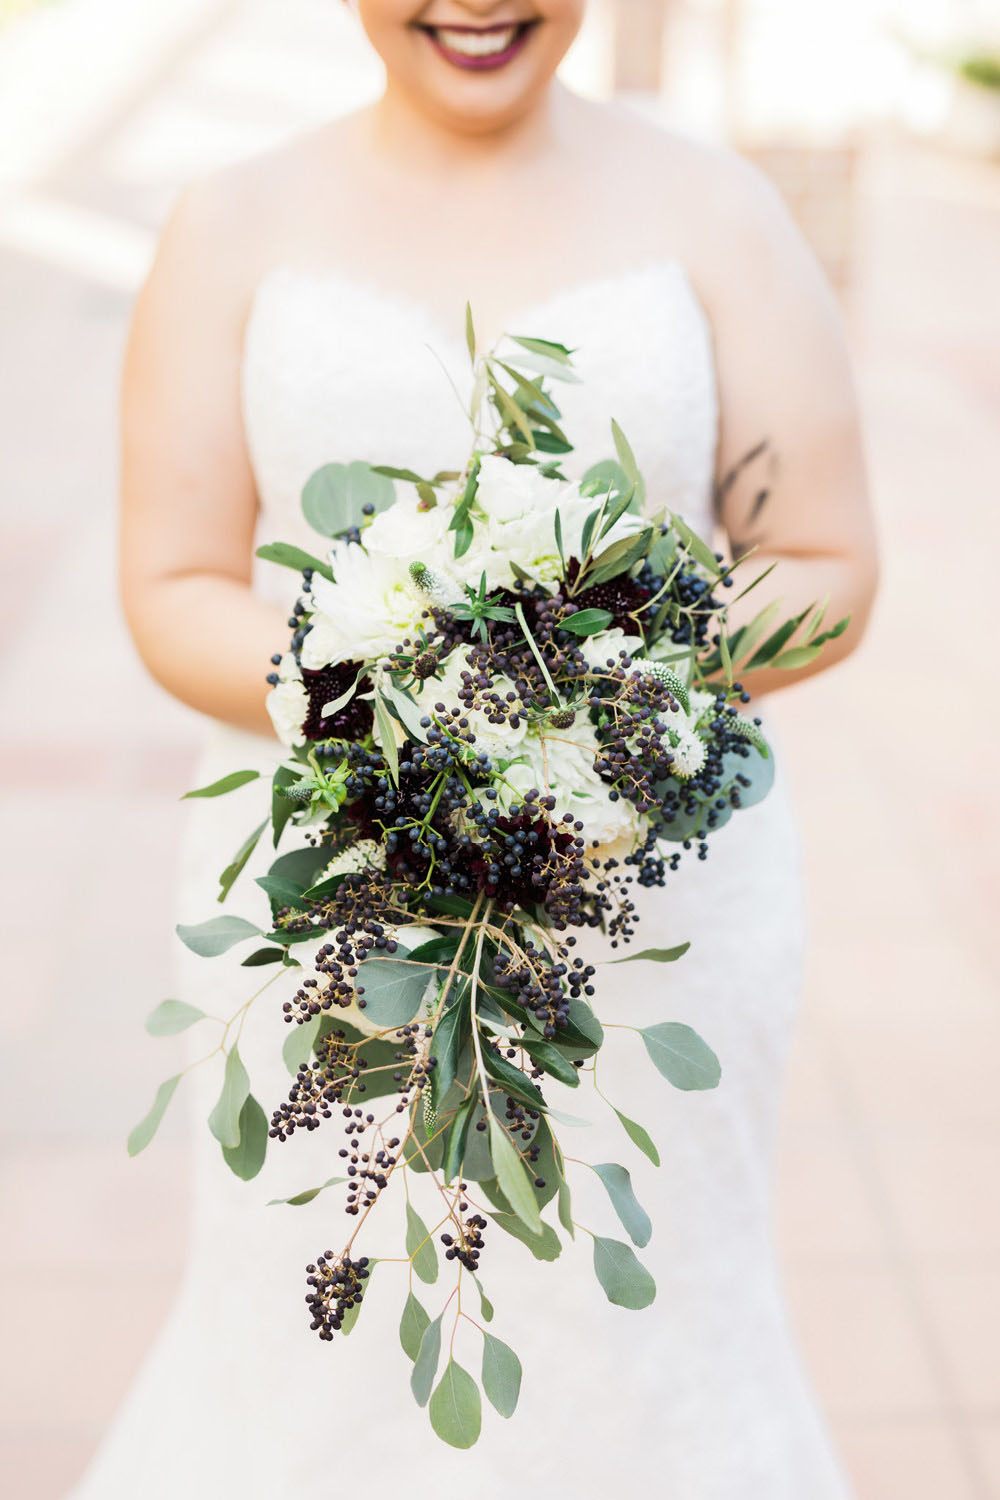 wedding-photography-portugal-bride-floral-bouquet-4.jpg